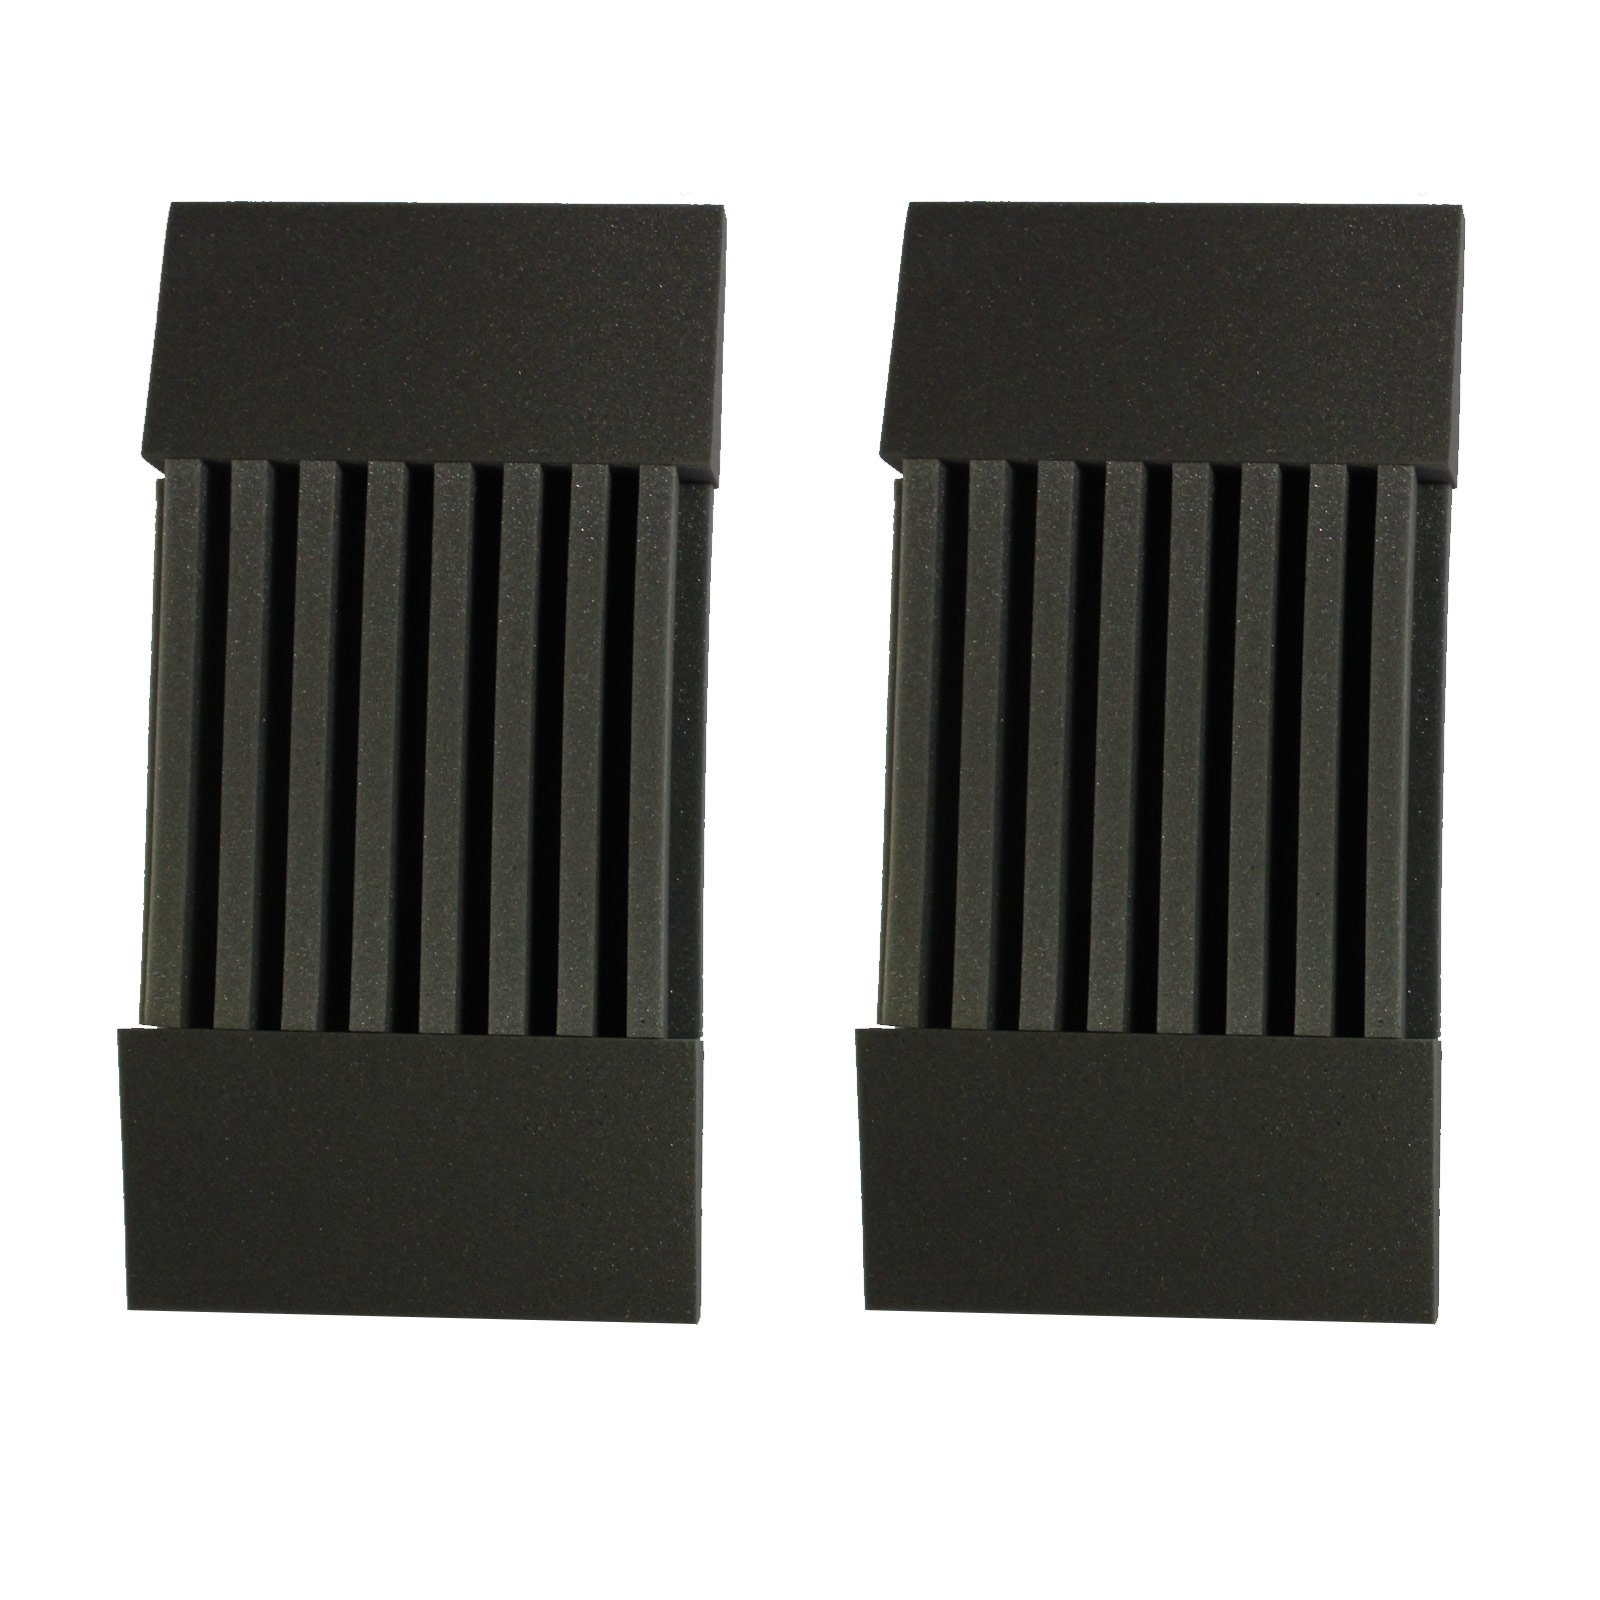 """Mybecca 2 Pack Decorative Acoustic Panels Soundproofing Studio Foam Wedges 3"""" X 12"""" X 24"""" (Decorative Baffle Kit) - Made in Usa - Color Charcoal"""